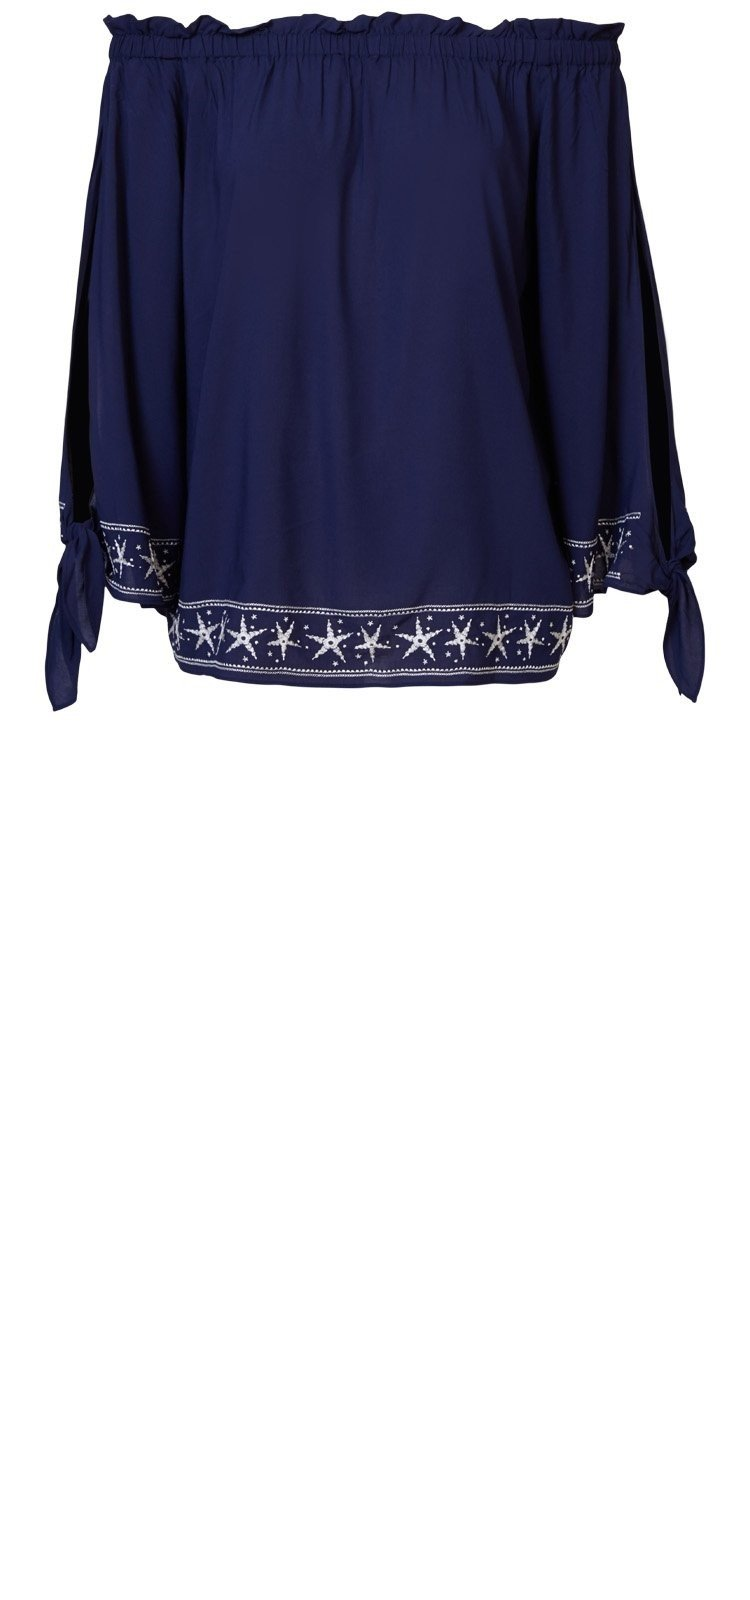 7e8c4a2f815878 Off Shoulder Blouse in donkerblauw